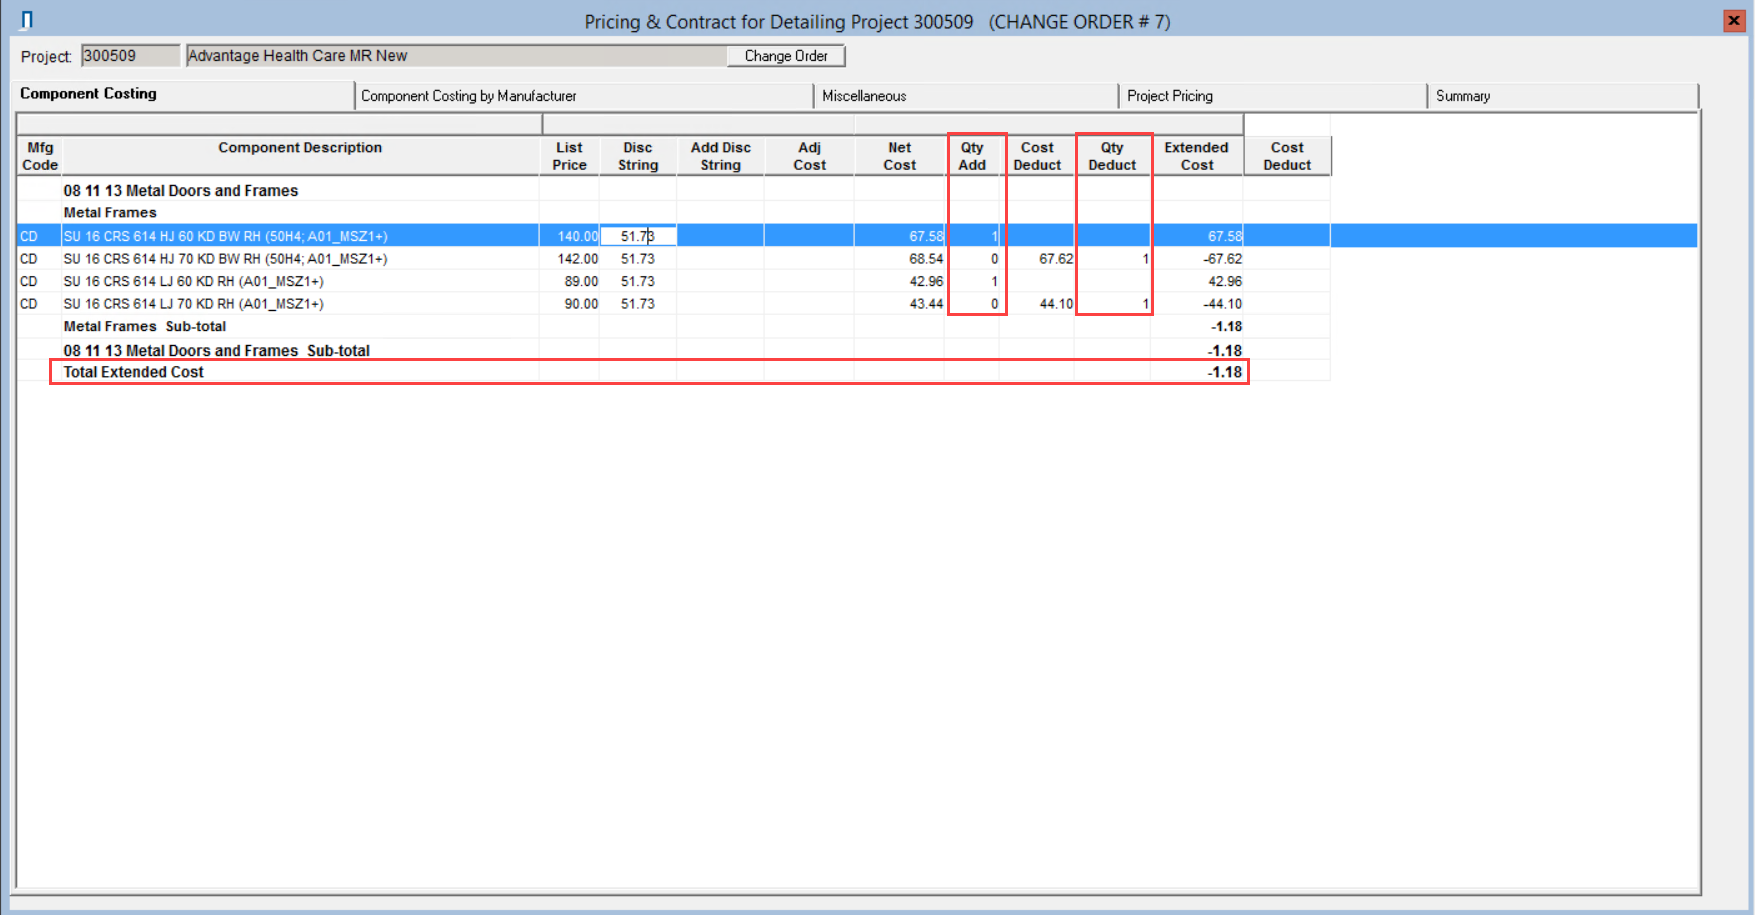 Pricing window; shows the Quantity Add column, Quantity Deduct column, and Total Extended Cost row.